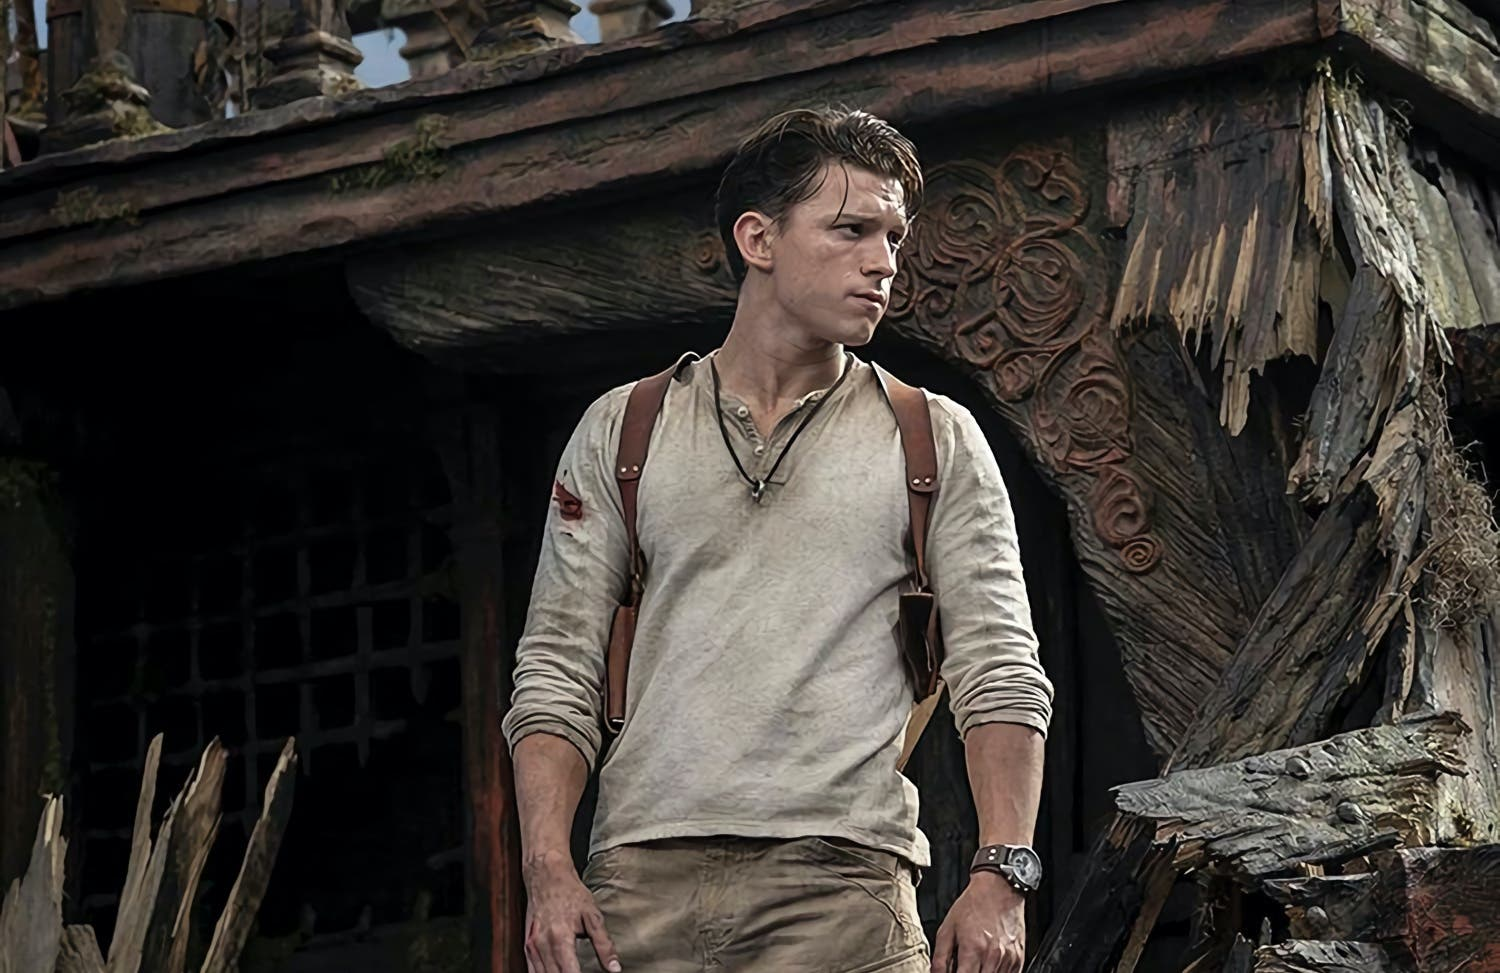 The Uncharted premiere has been delayed again and will arrive in February 2022